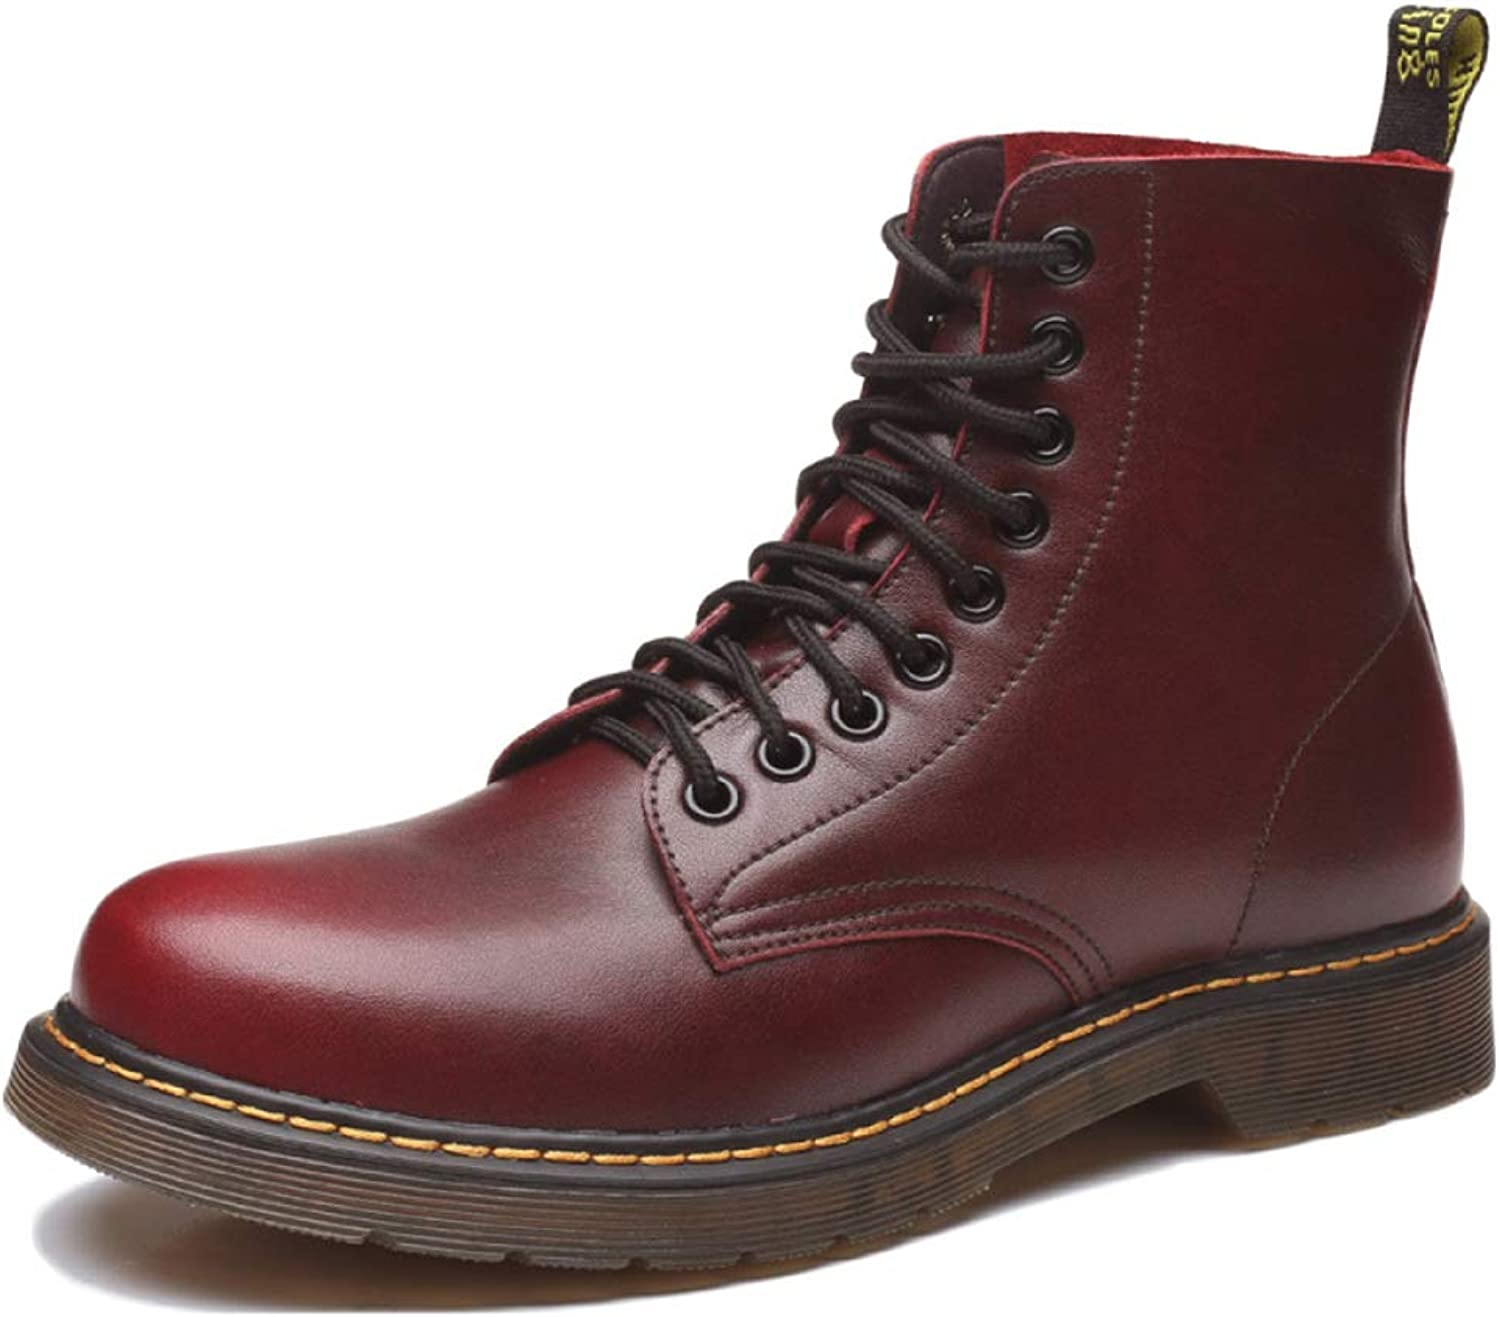 DSFGHE Martin Boots Men's Adult Boots Leather Military shoes Autumn and Winter Plus Velvet Outdoor Non-Slip Breathable Boots